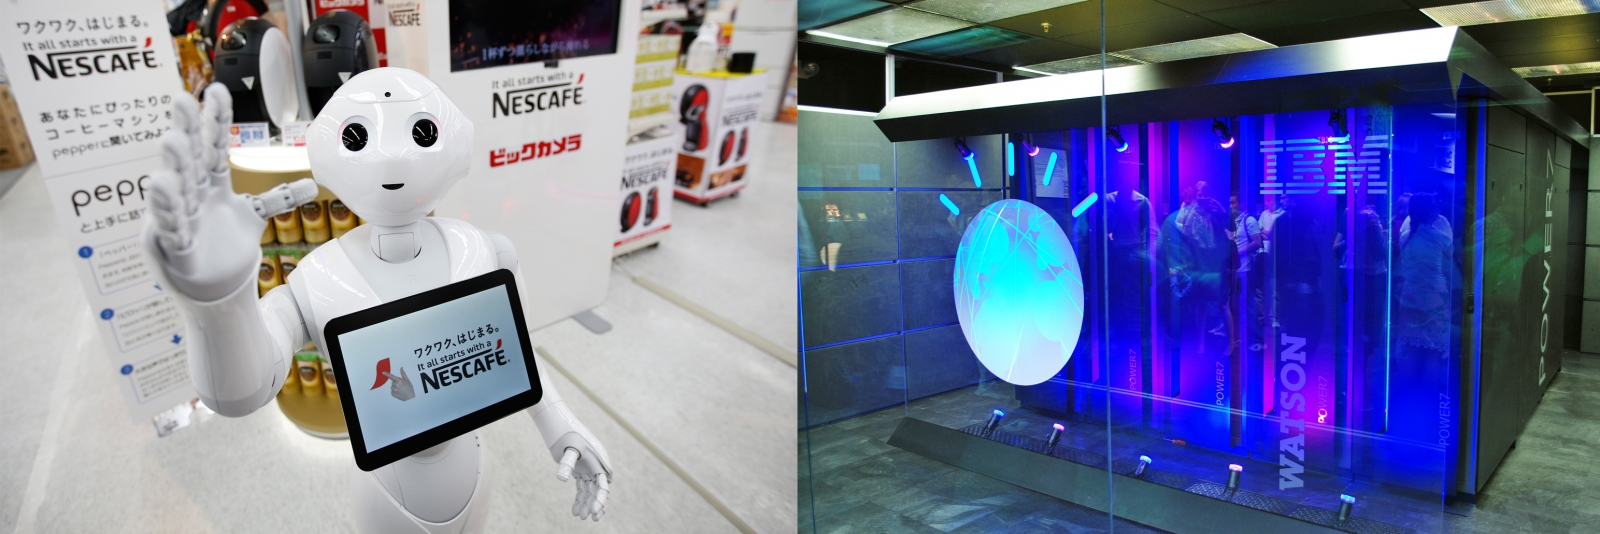 Imagine how powerful a robot Pepper could be if it had a brain like IBM's Watson?